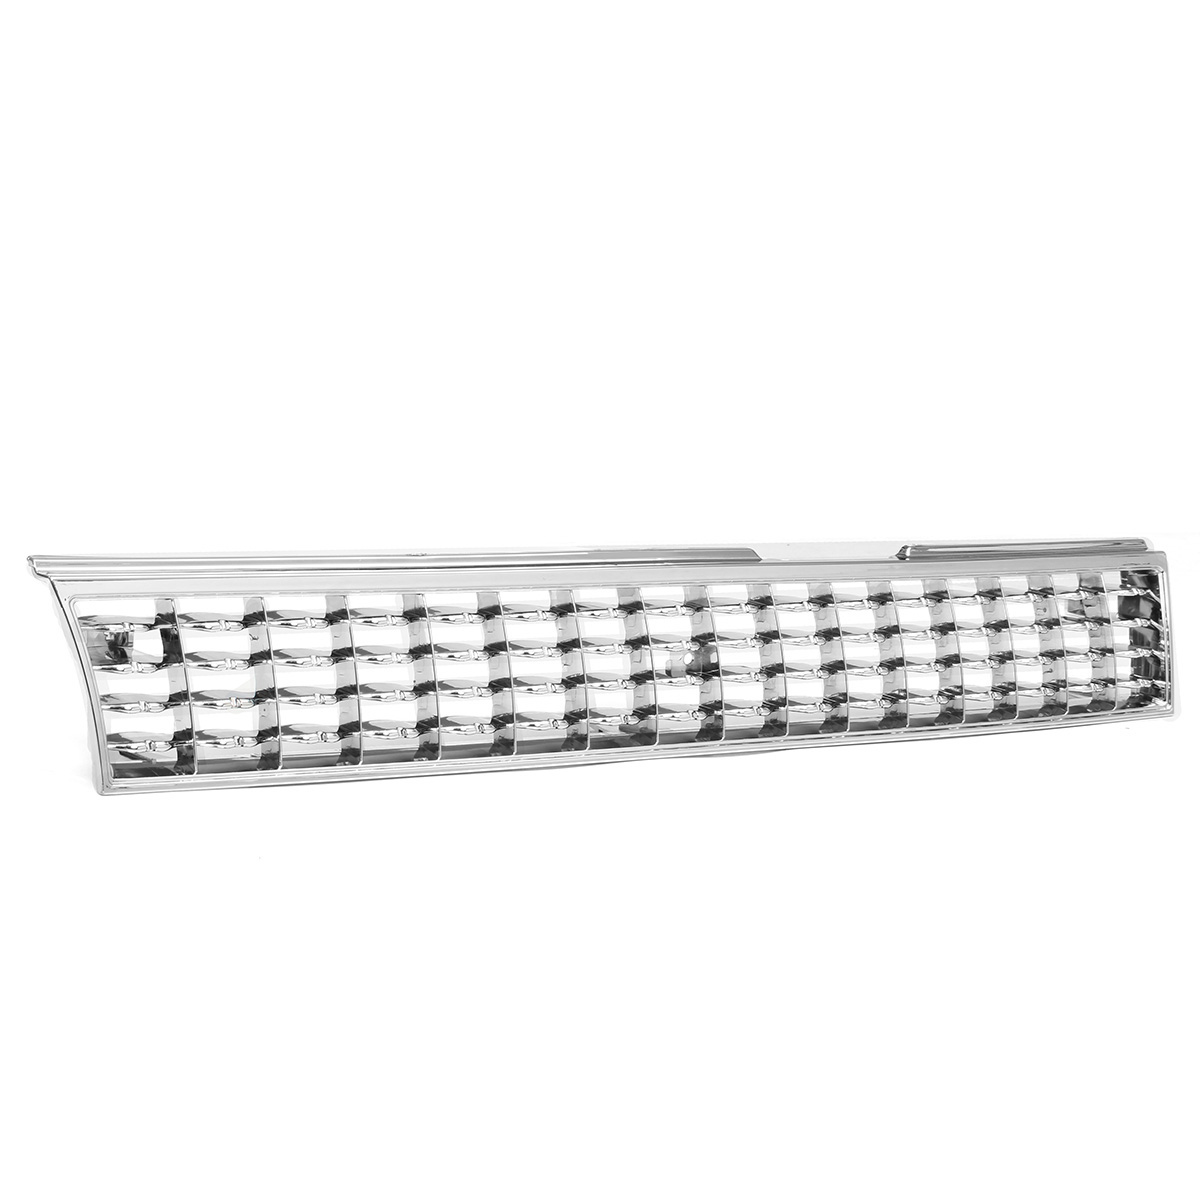 New Grill Corolla Chrome Silver Car Front Grille Grill For Toyota Corolla AE101 1988 1989 1990 1991 1992New Grill Corolla Chrome Silver Car Front Grille Grill For Toyota Corolla AE101 1988 1989 1990 1991 1992